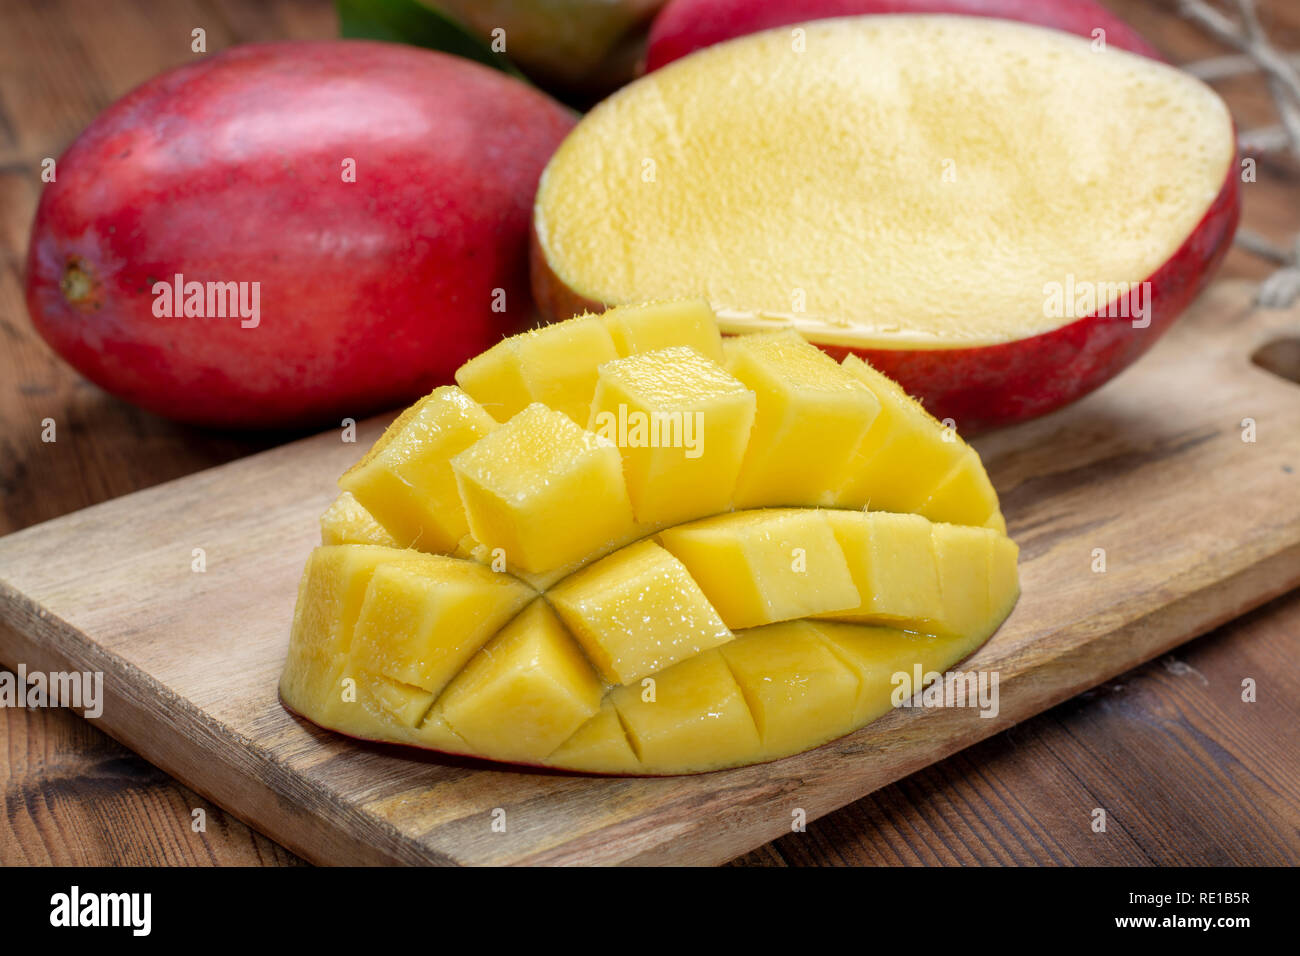 National fruit of India, Pakistan, and Philippines tropical